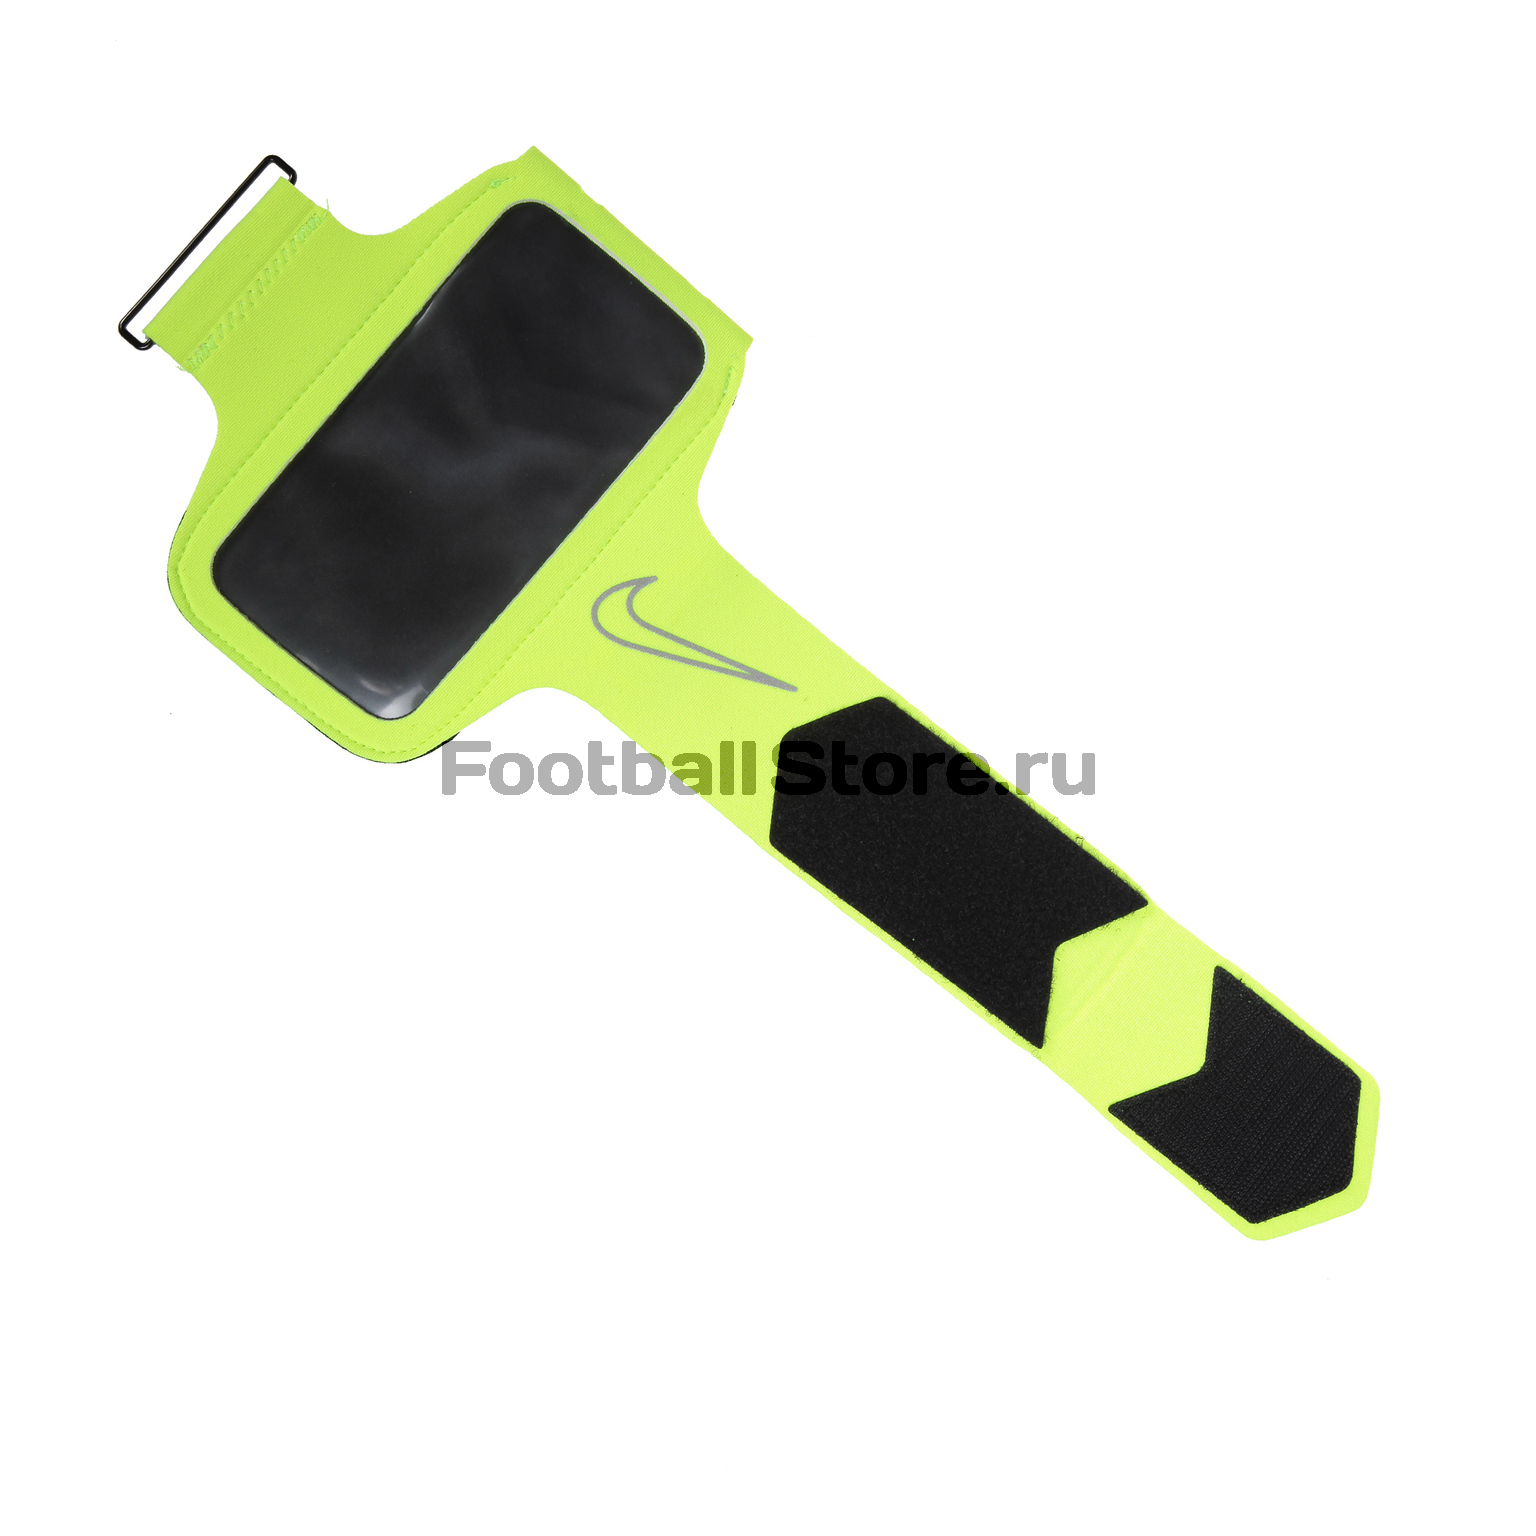 Спортинвентарь Nike Чехол для Iphone 5/5S на руку Nike Lightweight Arm Band 2.0 N.RN.43.715.OS спортинвентарь nike чехол для плеера на руку nike womens e1 prime perfomance arm band n rn 10 011 os